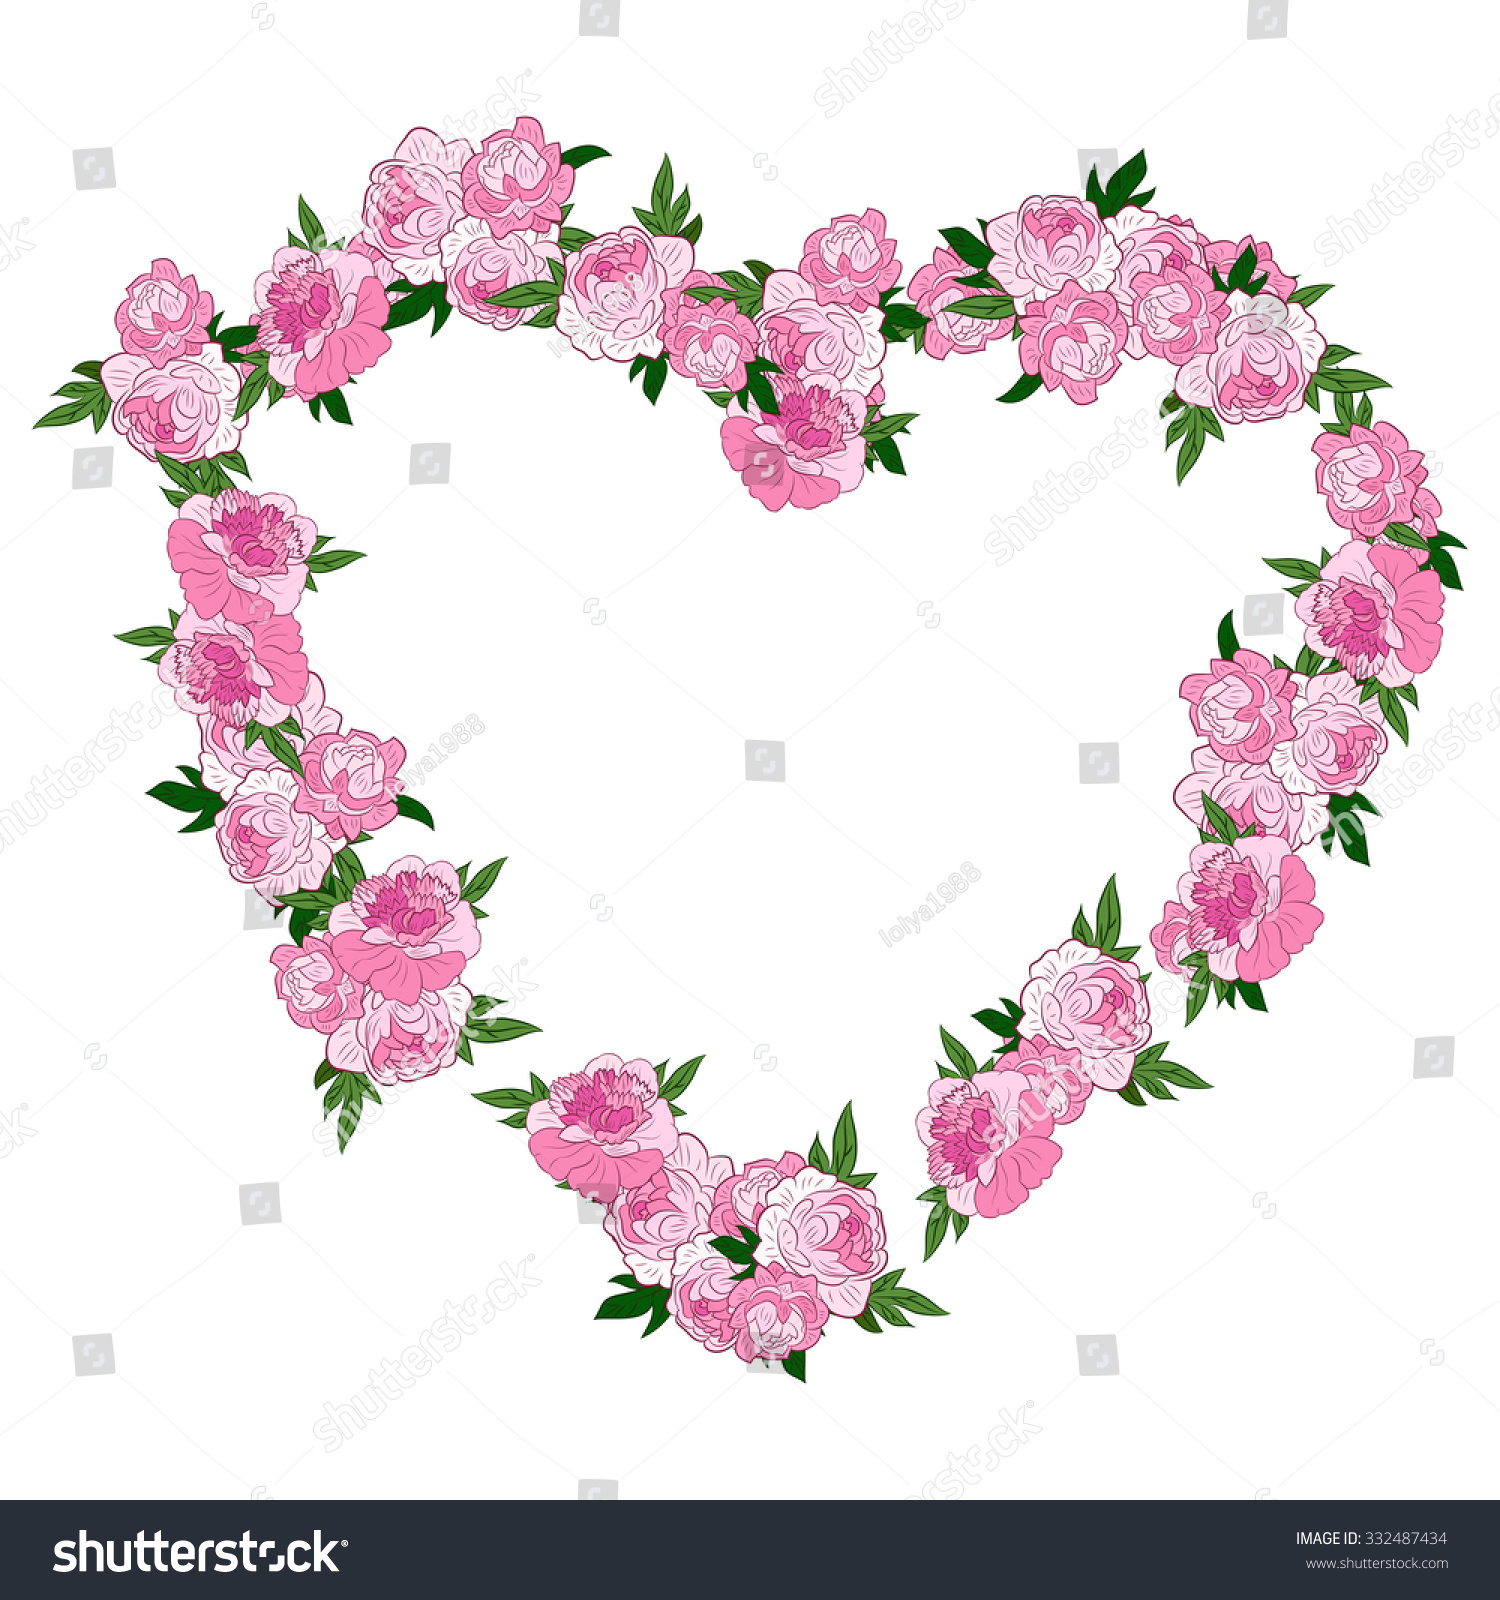 Royalty Free Pink Floral Heart Shape Wreath Made 332487434 Stock